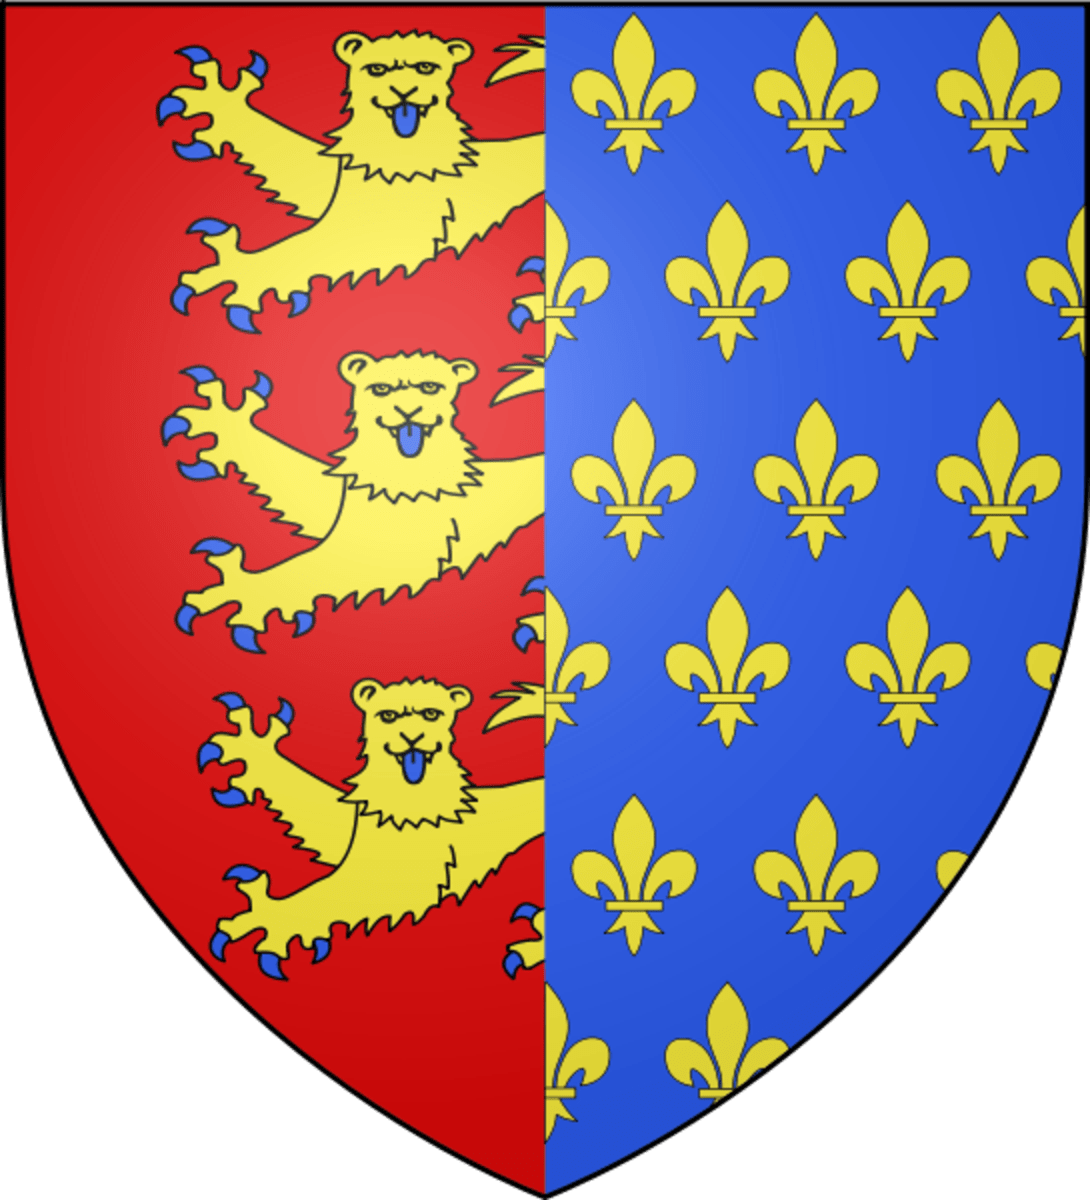 Heraldry - Find or Create Your Family Crest WeHaveKids